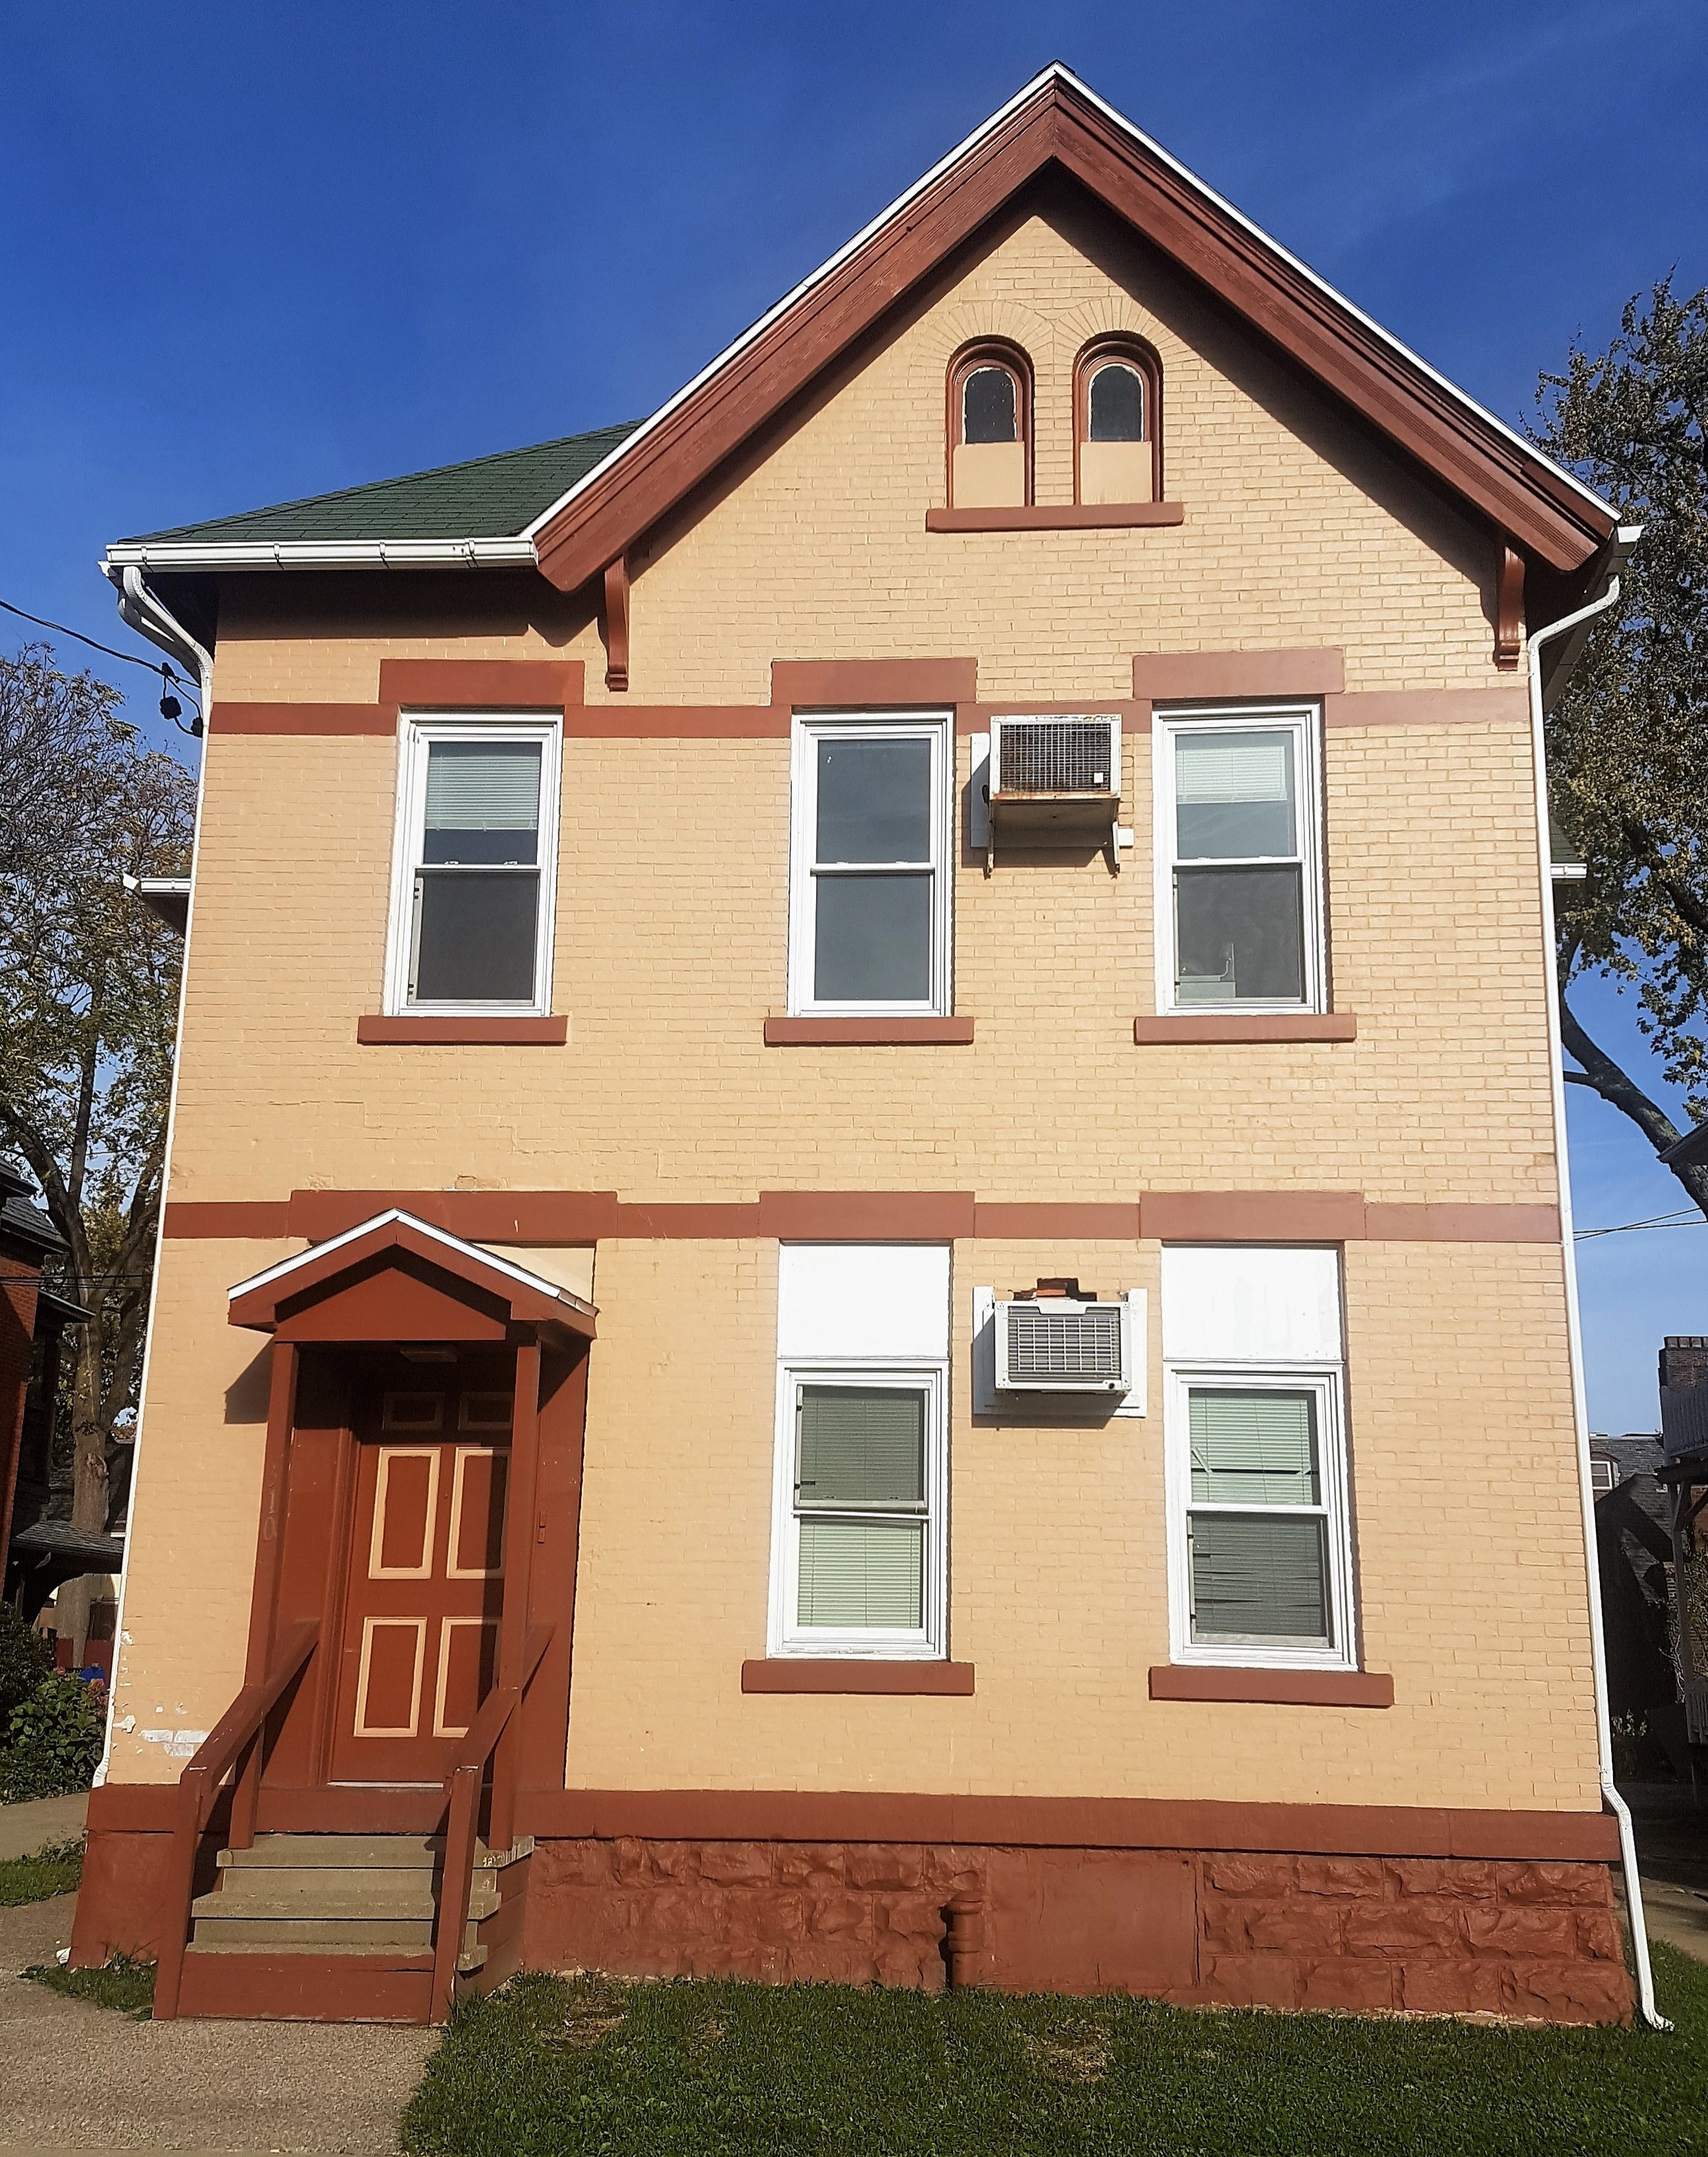 Honors House - 310 W 7th St. Erie PA 16501Newly remodeled four unit building one block from library. Energy efficient home. Also includes on site laundry and off street parking.